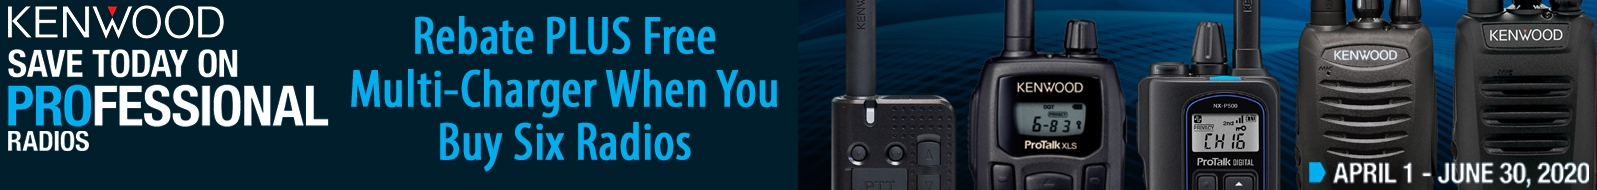 Buy 6 Kenwood ProTalk radios, get a $100-$200 rebate plus a FREE Multi-Charger!